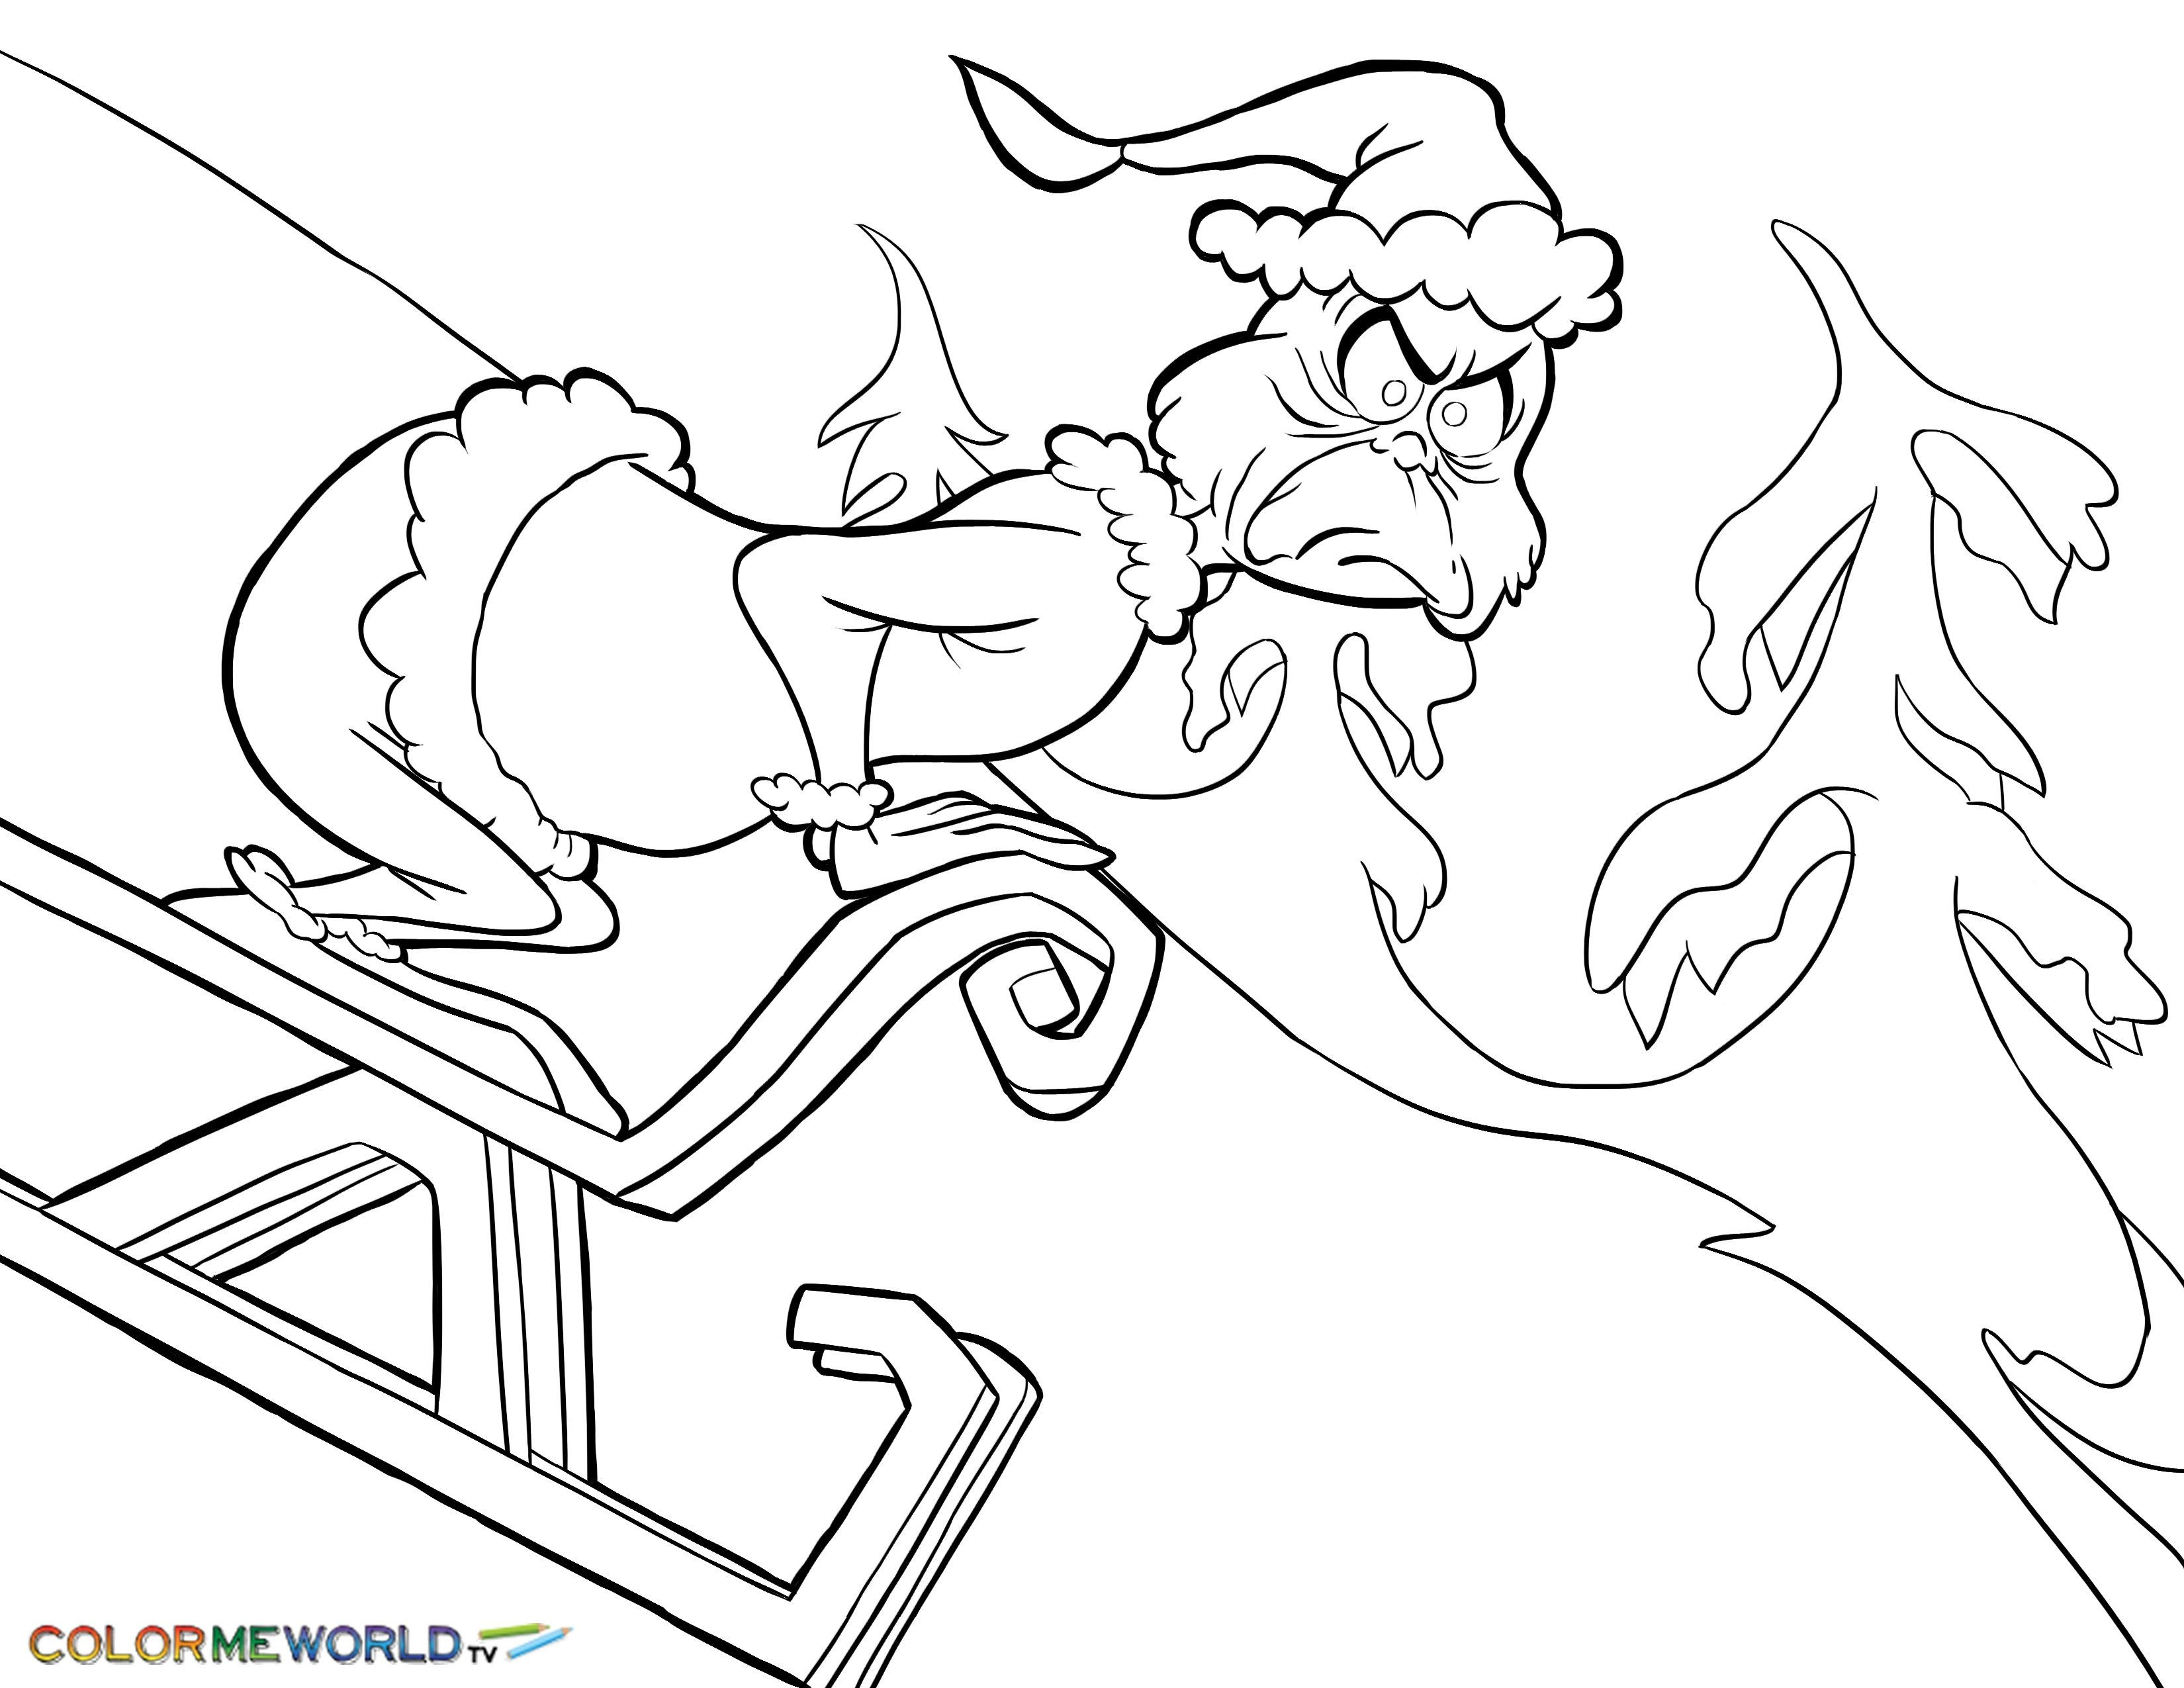 Santa Suit Coloring Page Getcoloringpages With Collection Of Grinch Pictures Download Them And Try To Solve